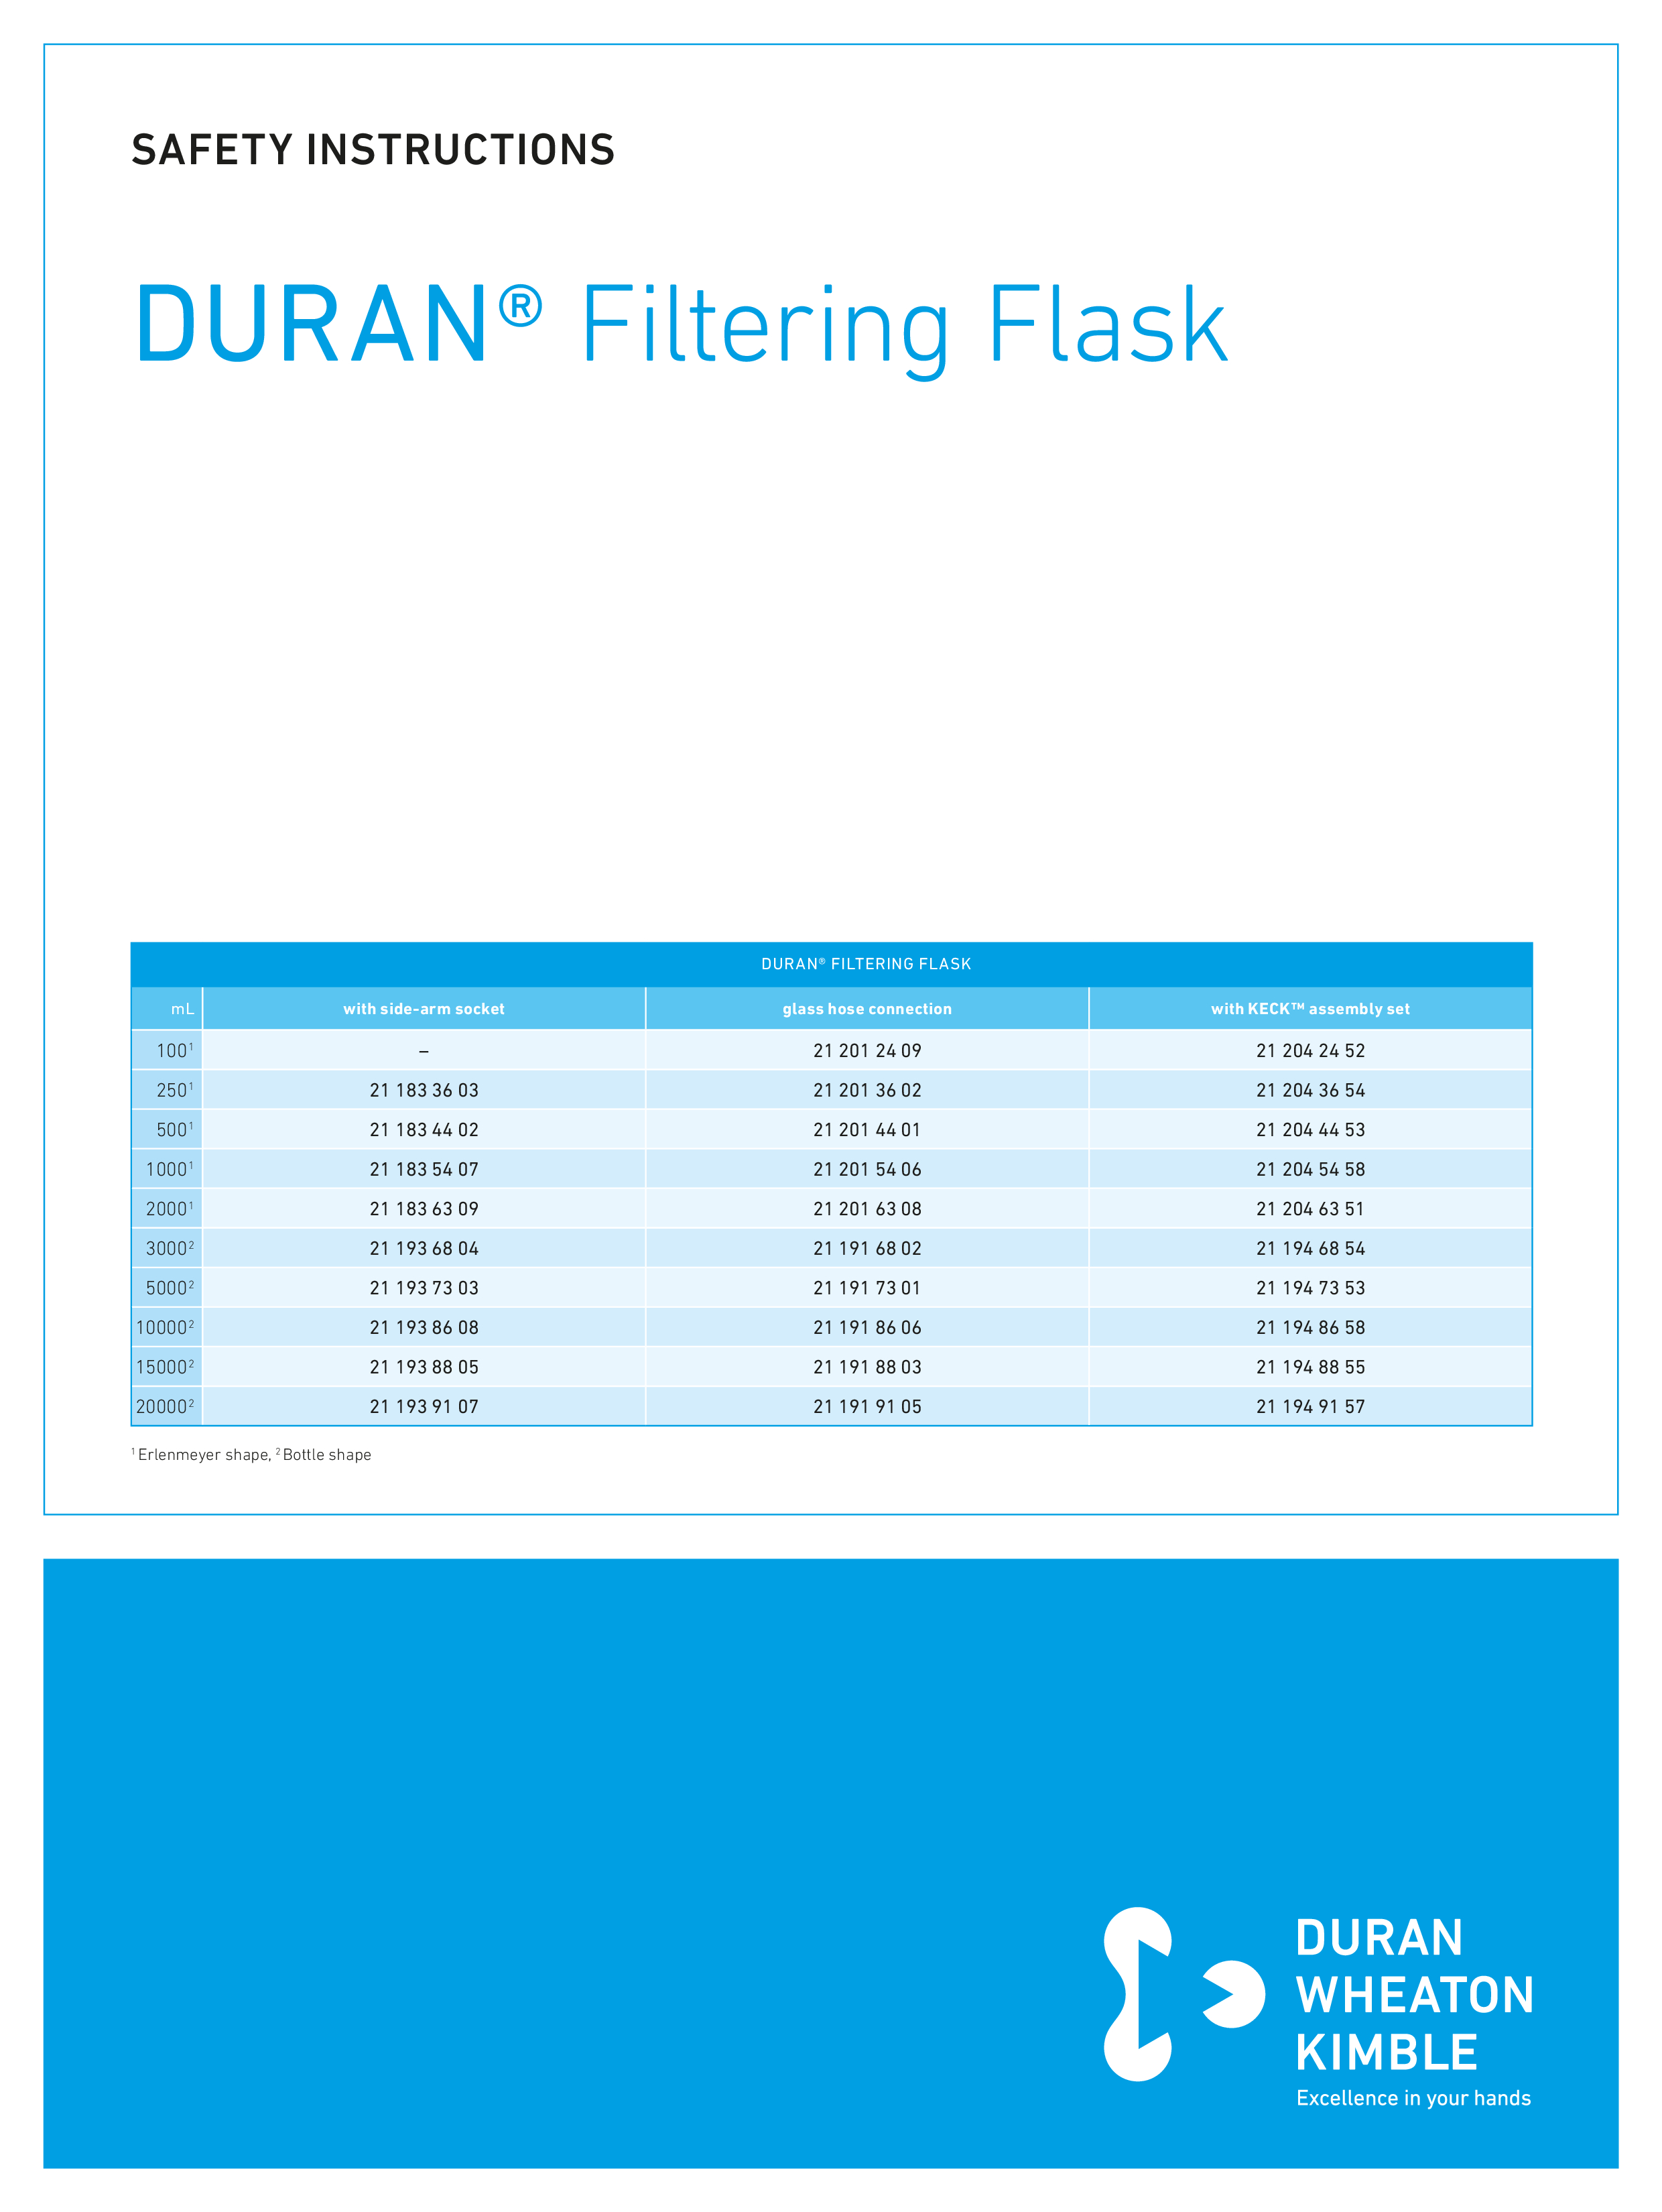 Safety Instructions DURAN® Filtering Flask